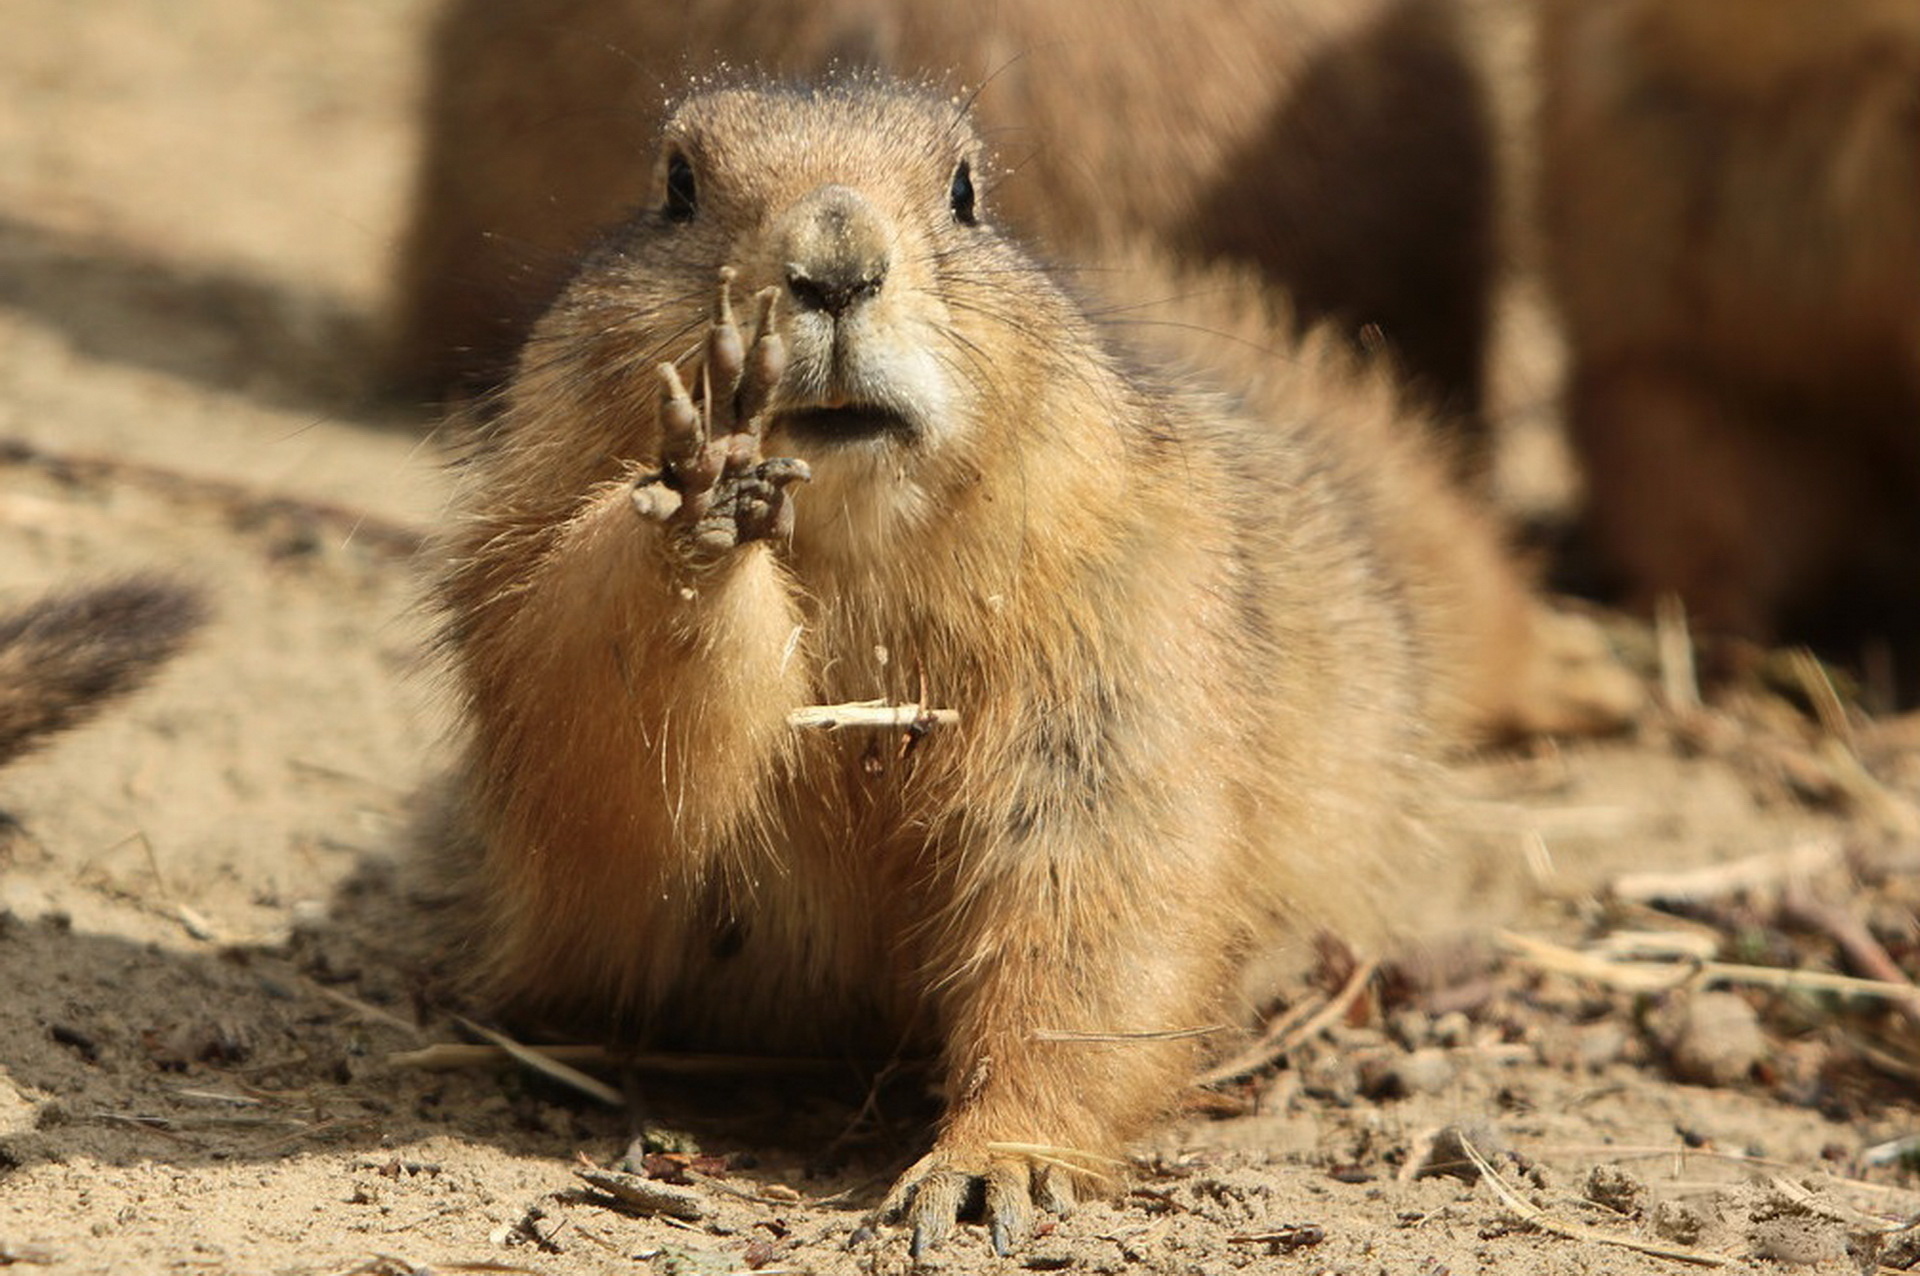 93813 download wallpaper Animals, Marmot, Paw, Mud, Dirt screensavers and pictures for free